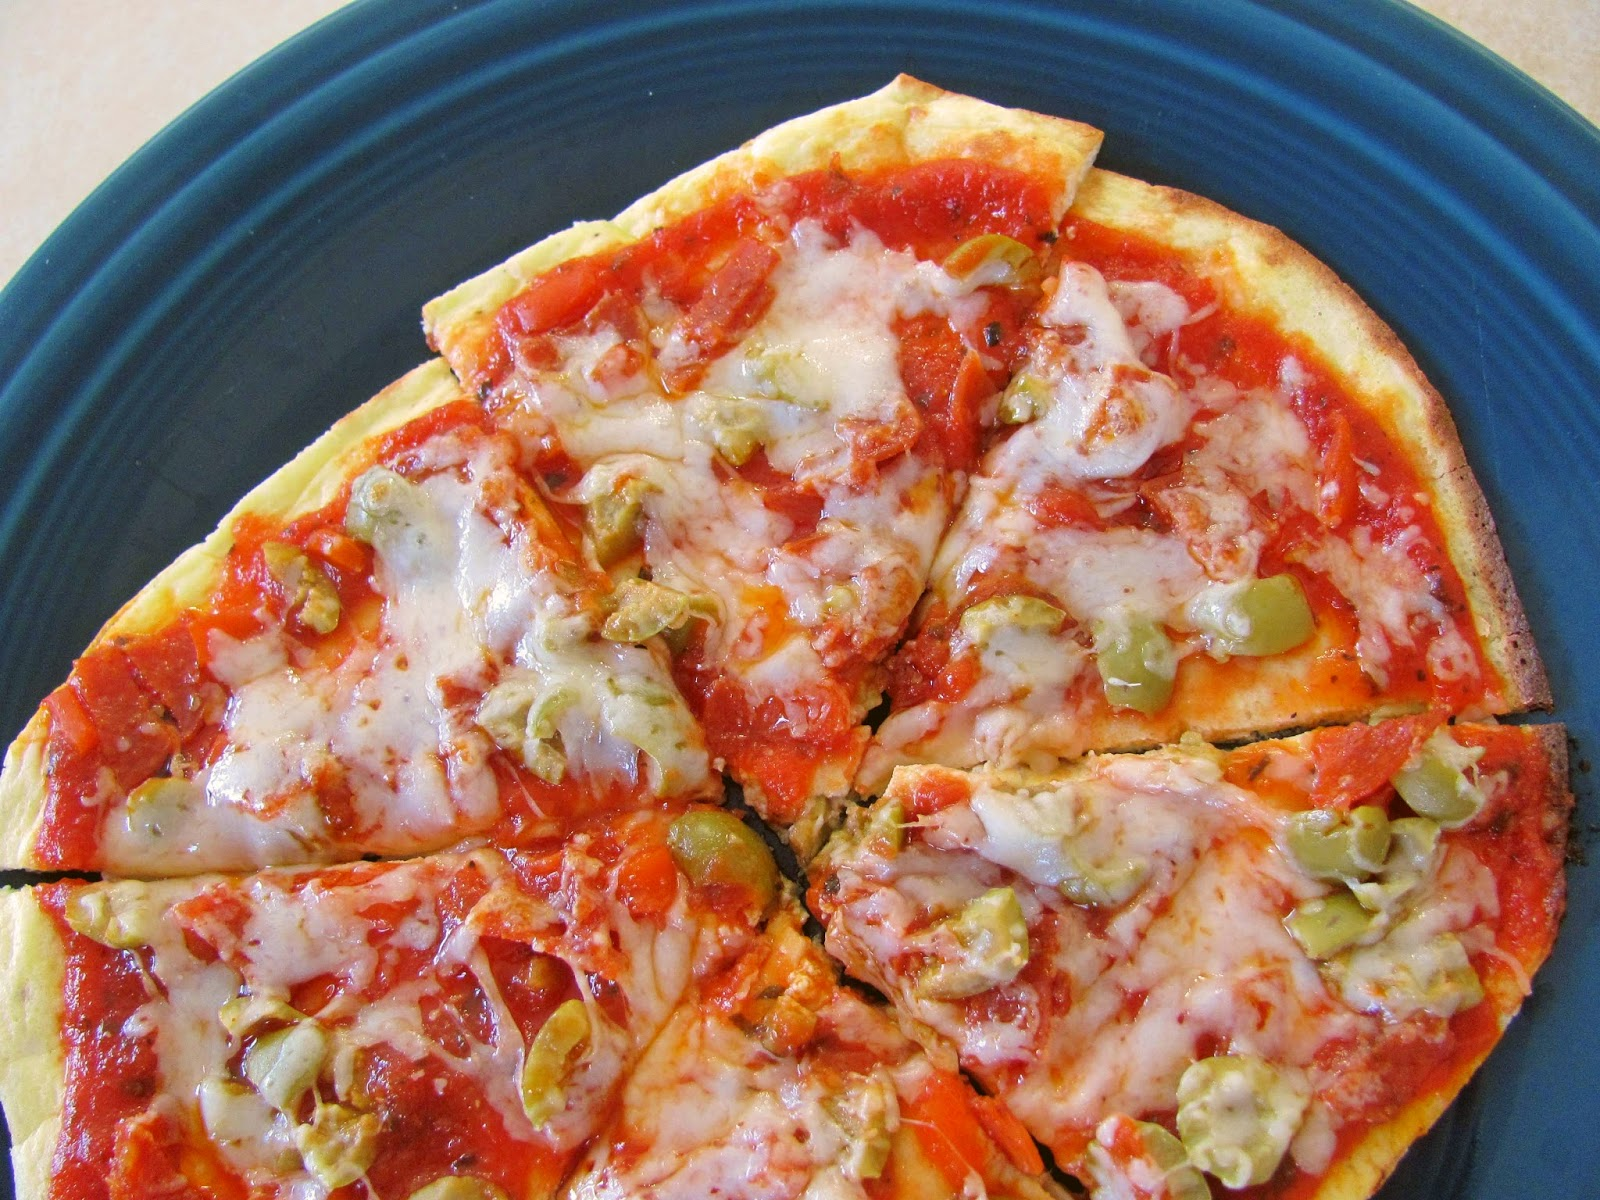 http://ichoosejoy2day.blogspot.com/2015/01/pizza-traditional-taste-nontraditional.html